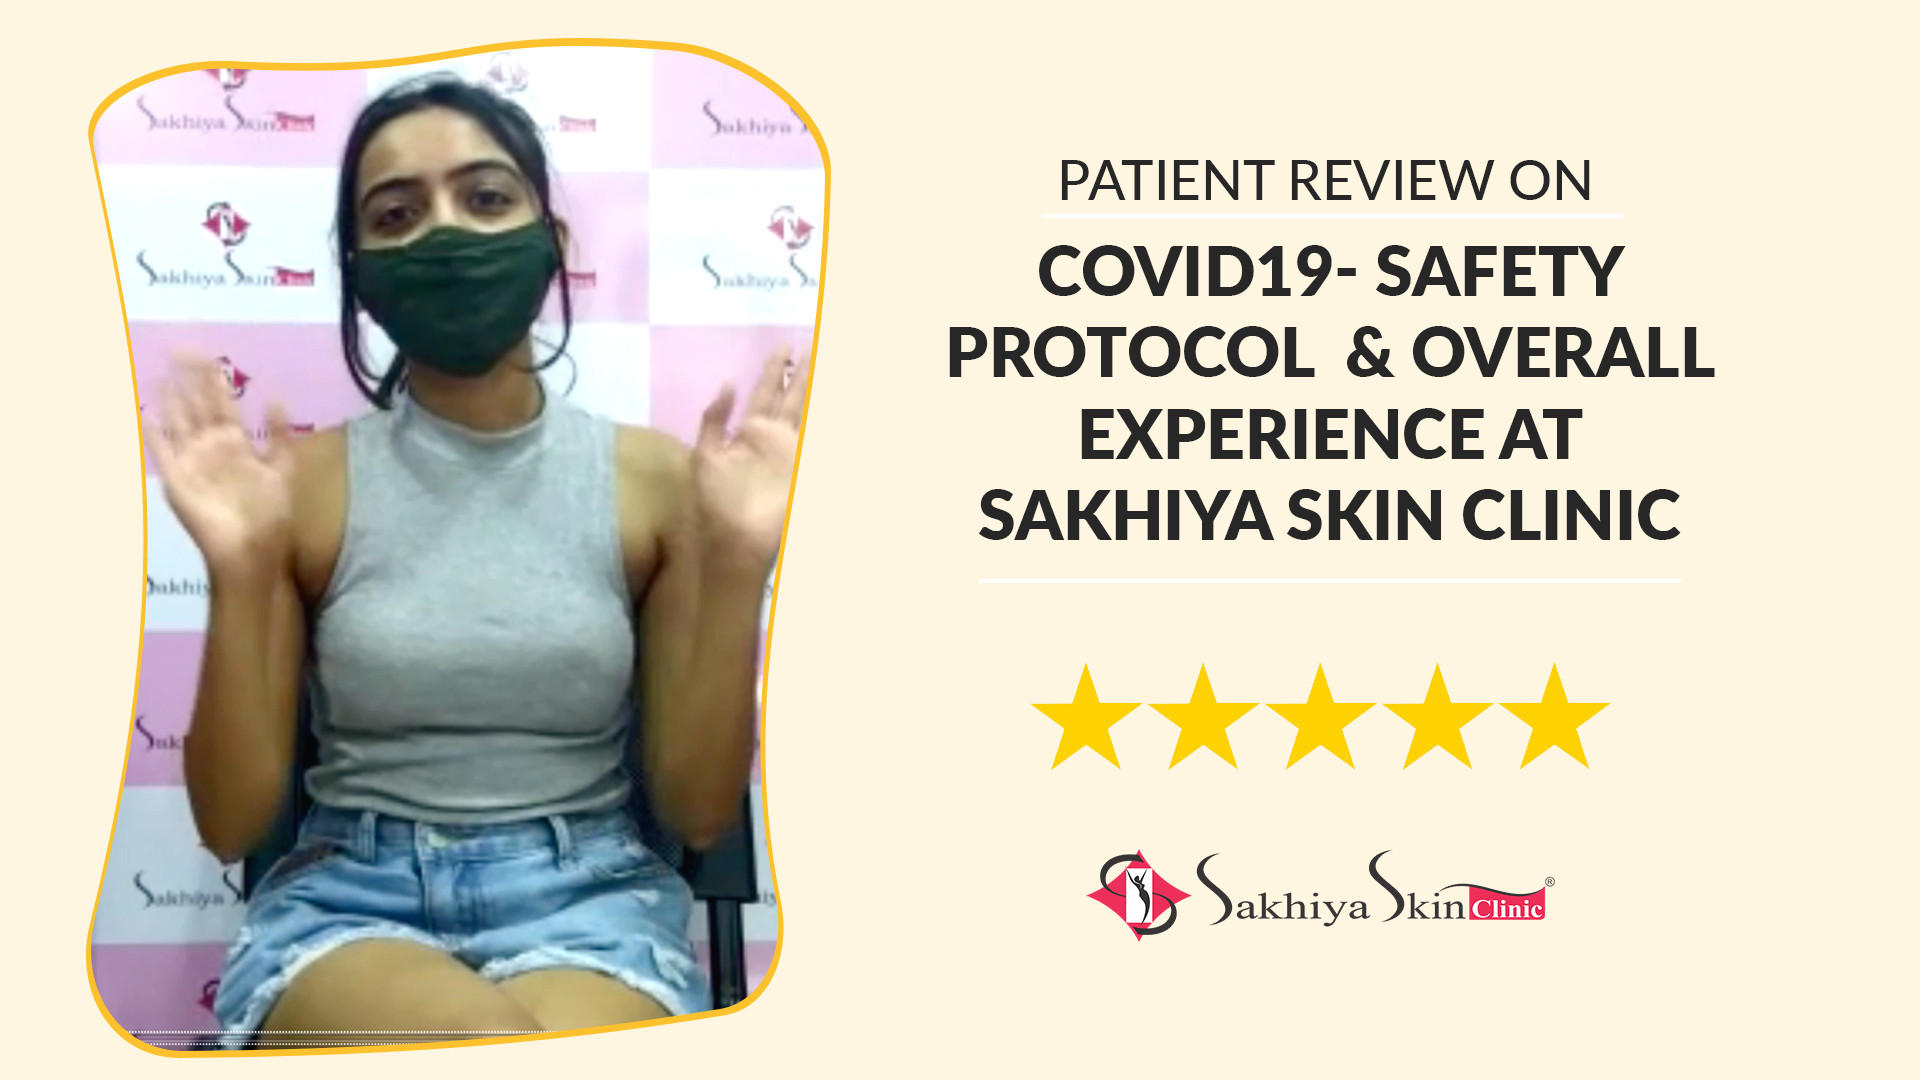 Covid19- Safety Review